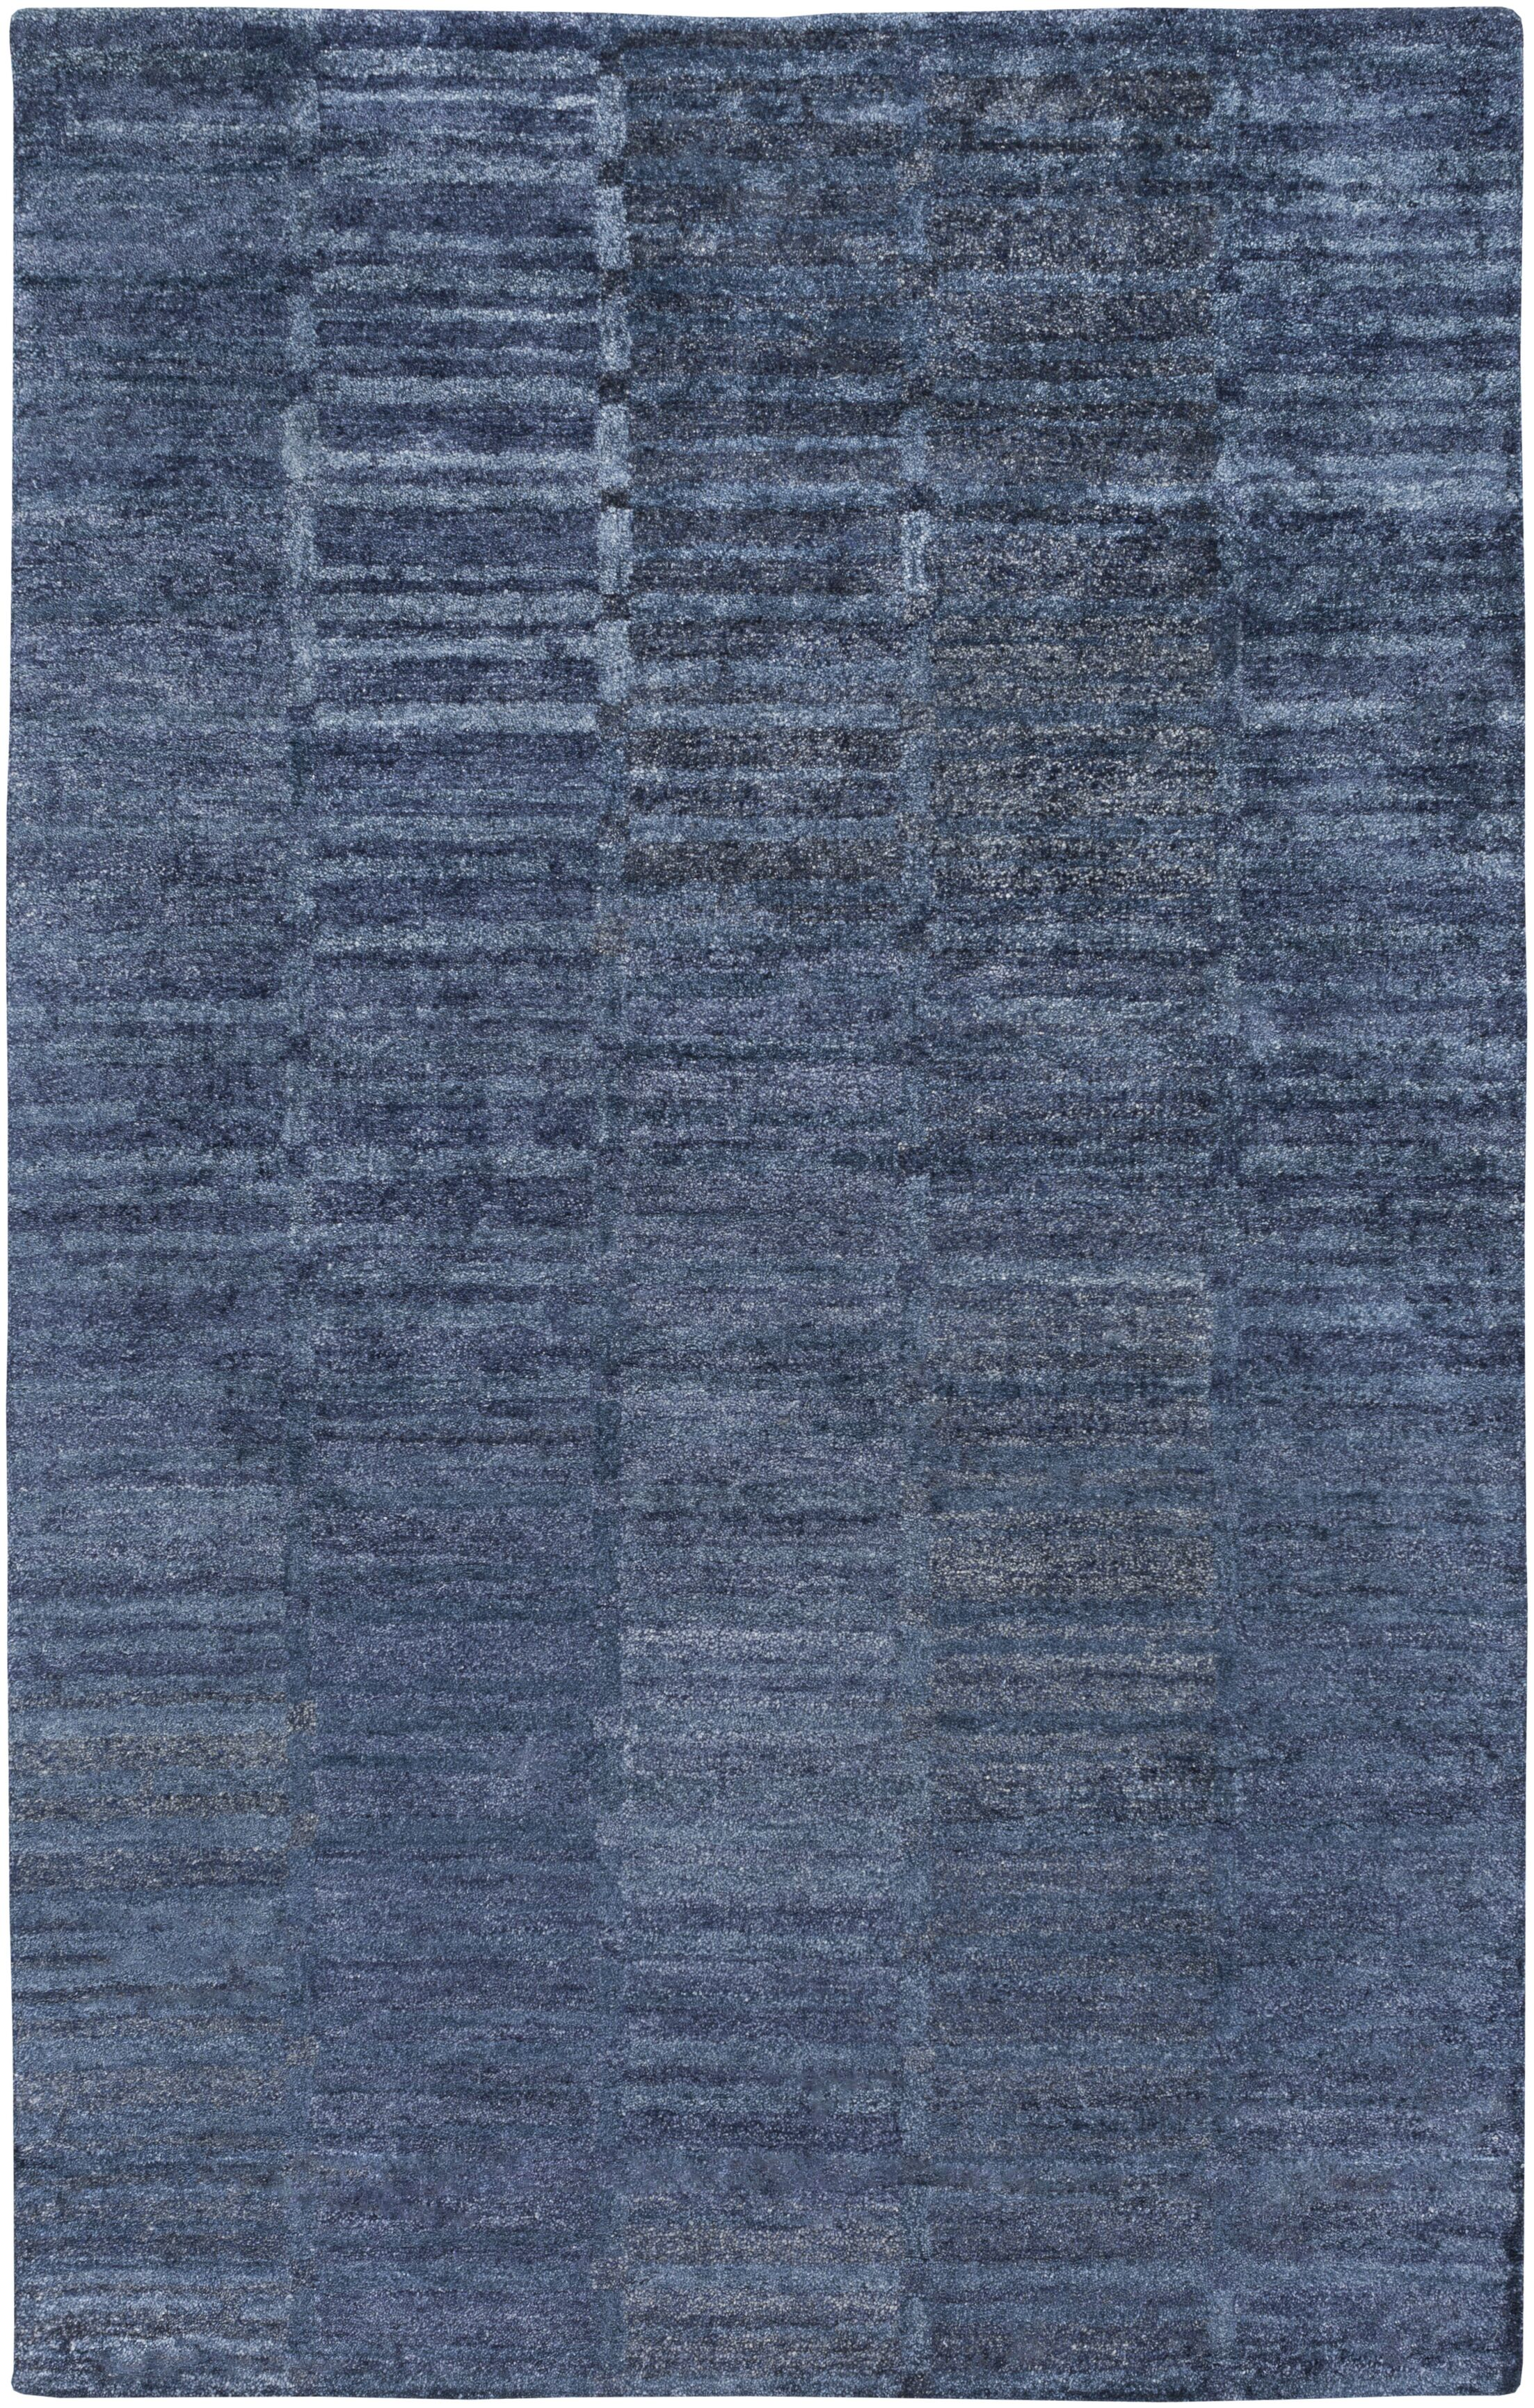 Clemmer Hand-Tufted Teal Area Rug Rug Size: Rectangle 5' x 8'